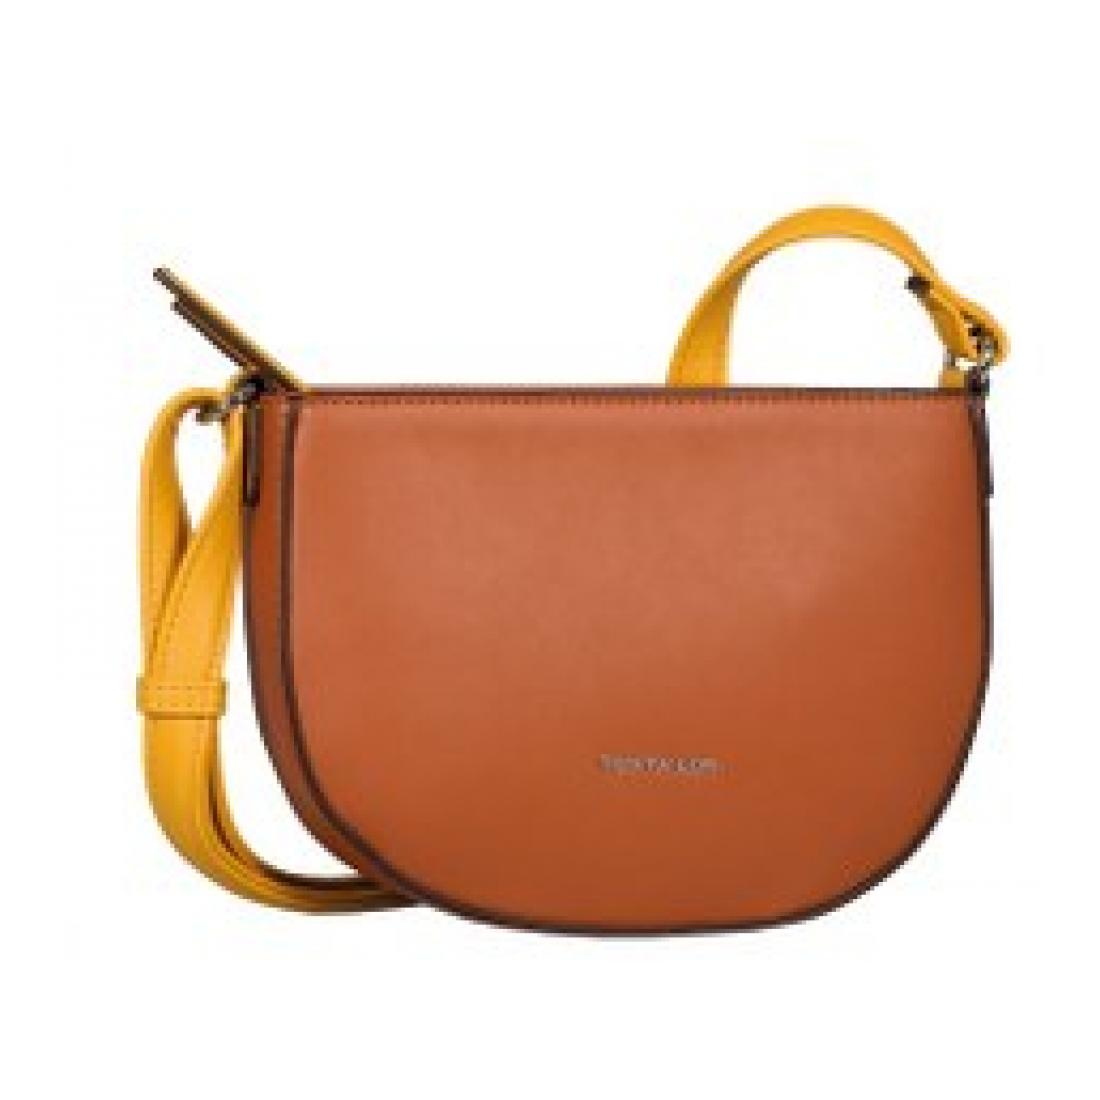 Tom Tailor Tasche Mette Cross bag